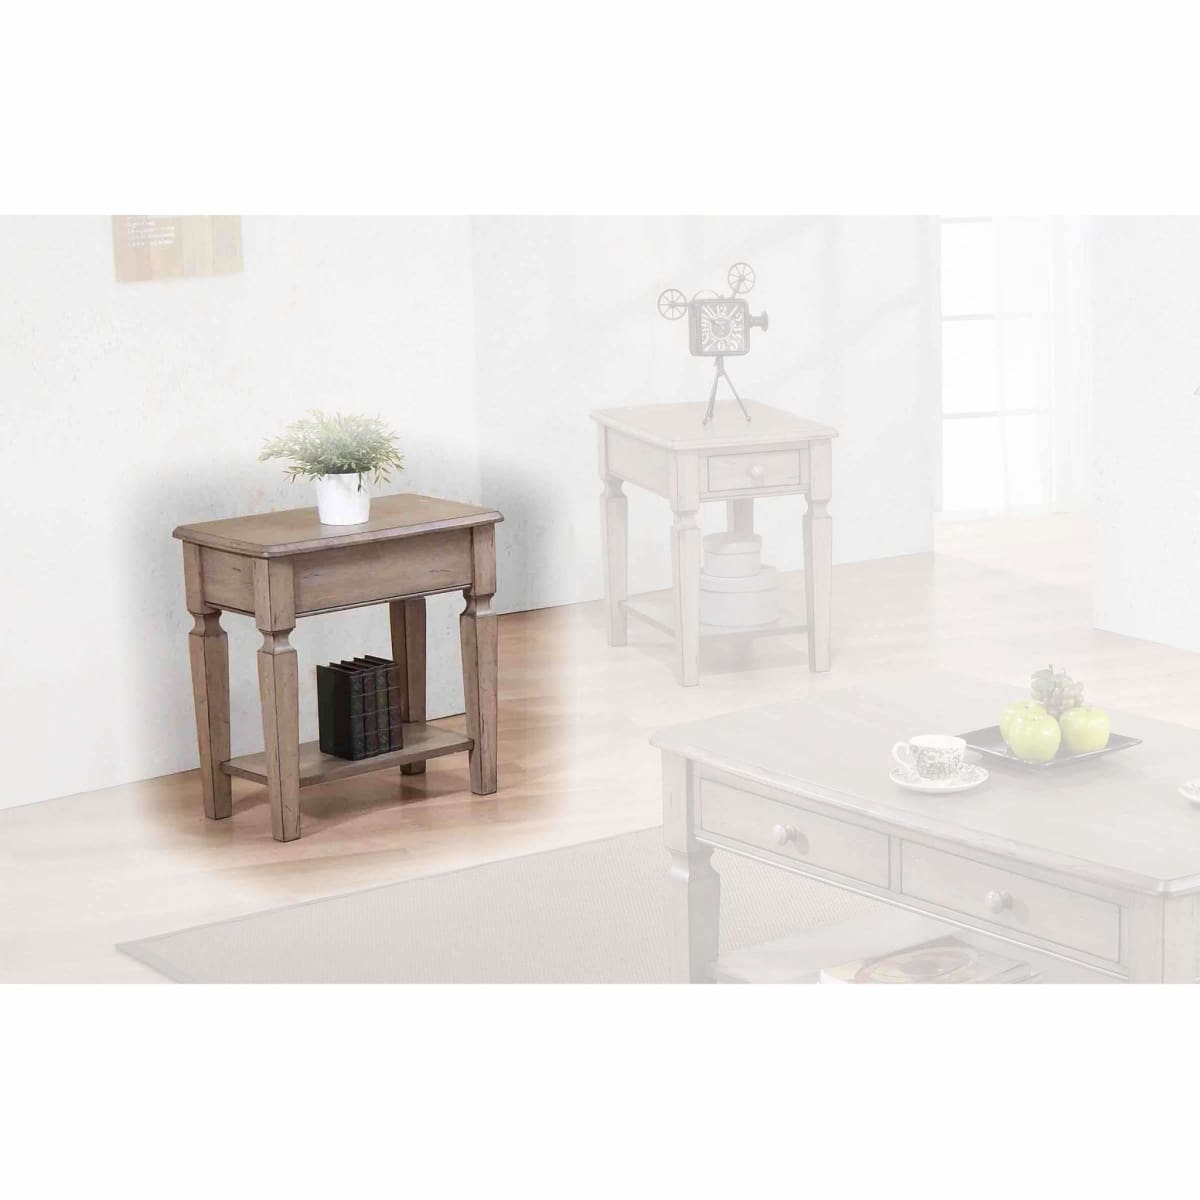 Ventura 14 Lamp Table - END TABLE/SIDE TABLE